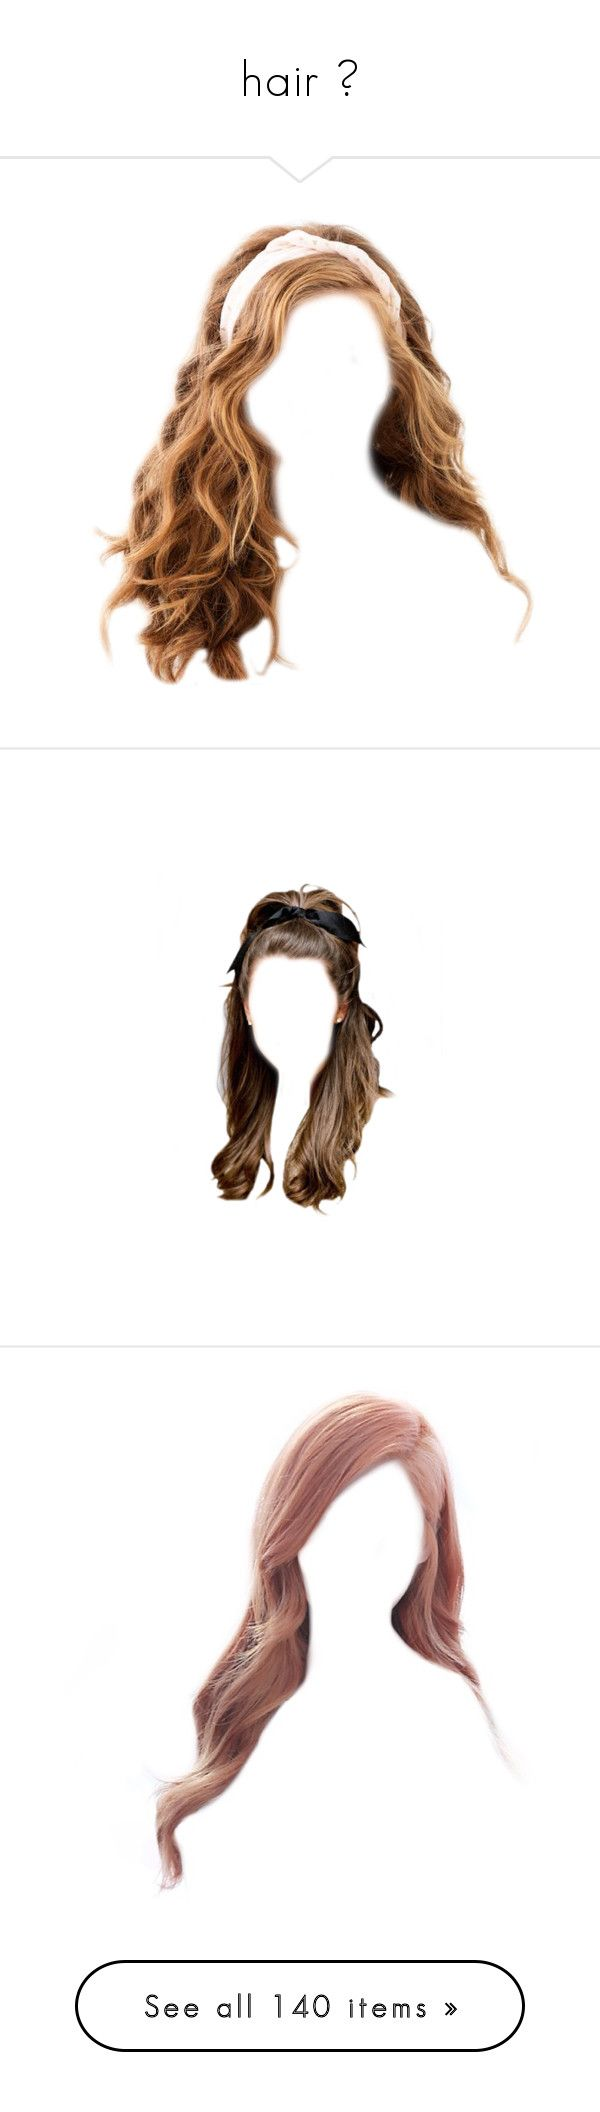 """""""hair ♡"""" by foreverdreamt ❤ liked on Polyvore featuring accessories, hair accessories, hair, hair band accessories, hair band headband, headband hair accessories, head wrap hair accessories, head wrap headbands, beauty products and haircare"""